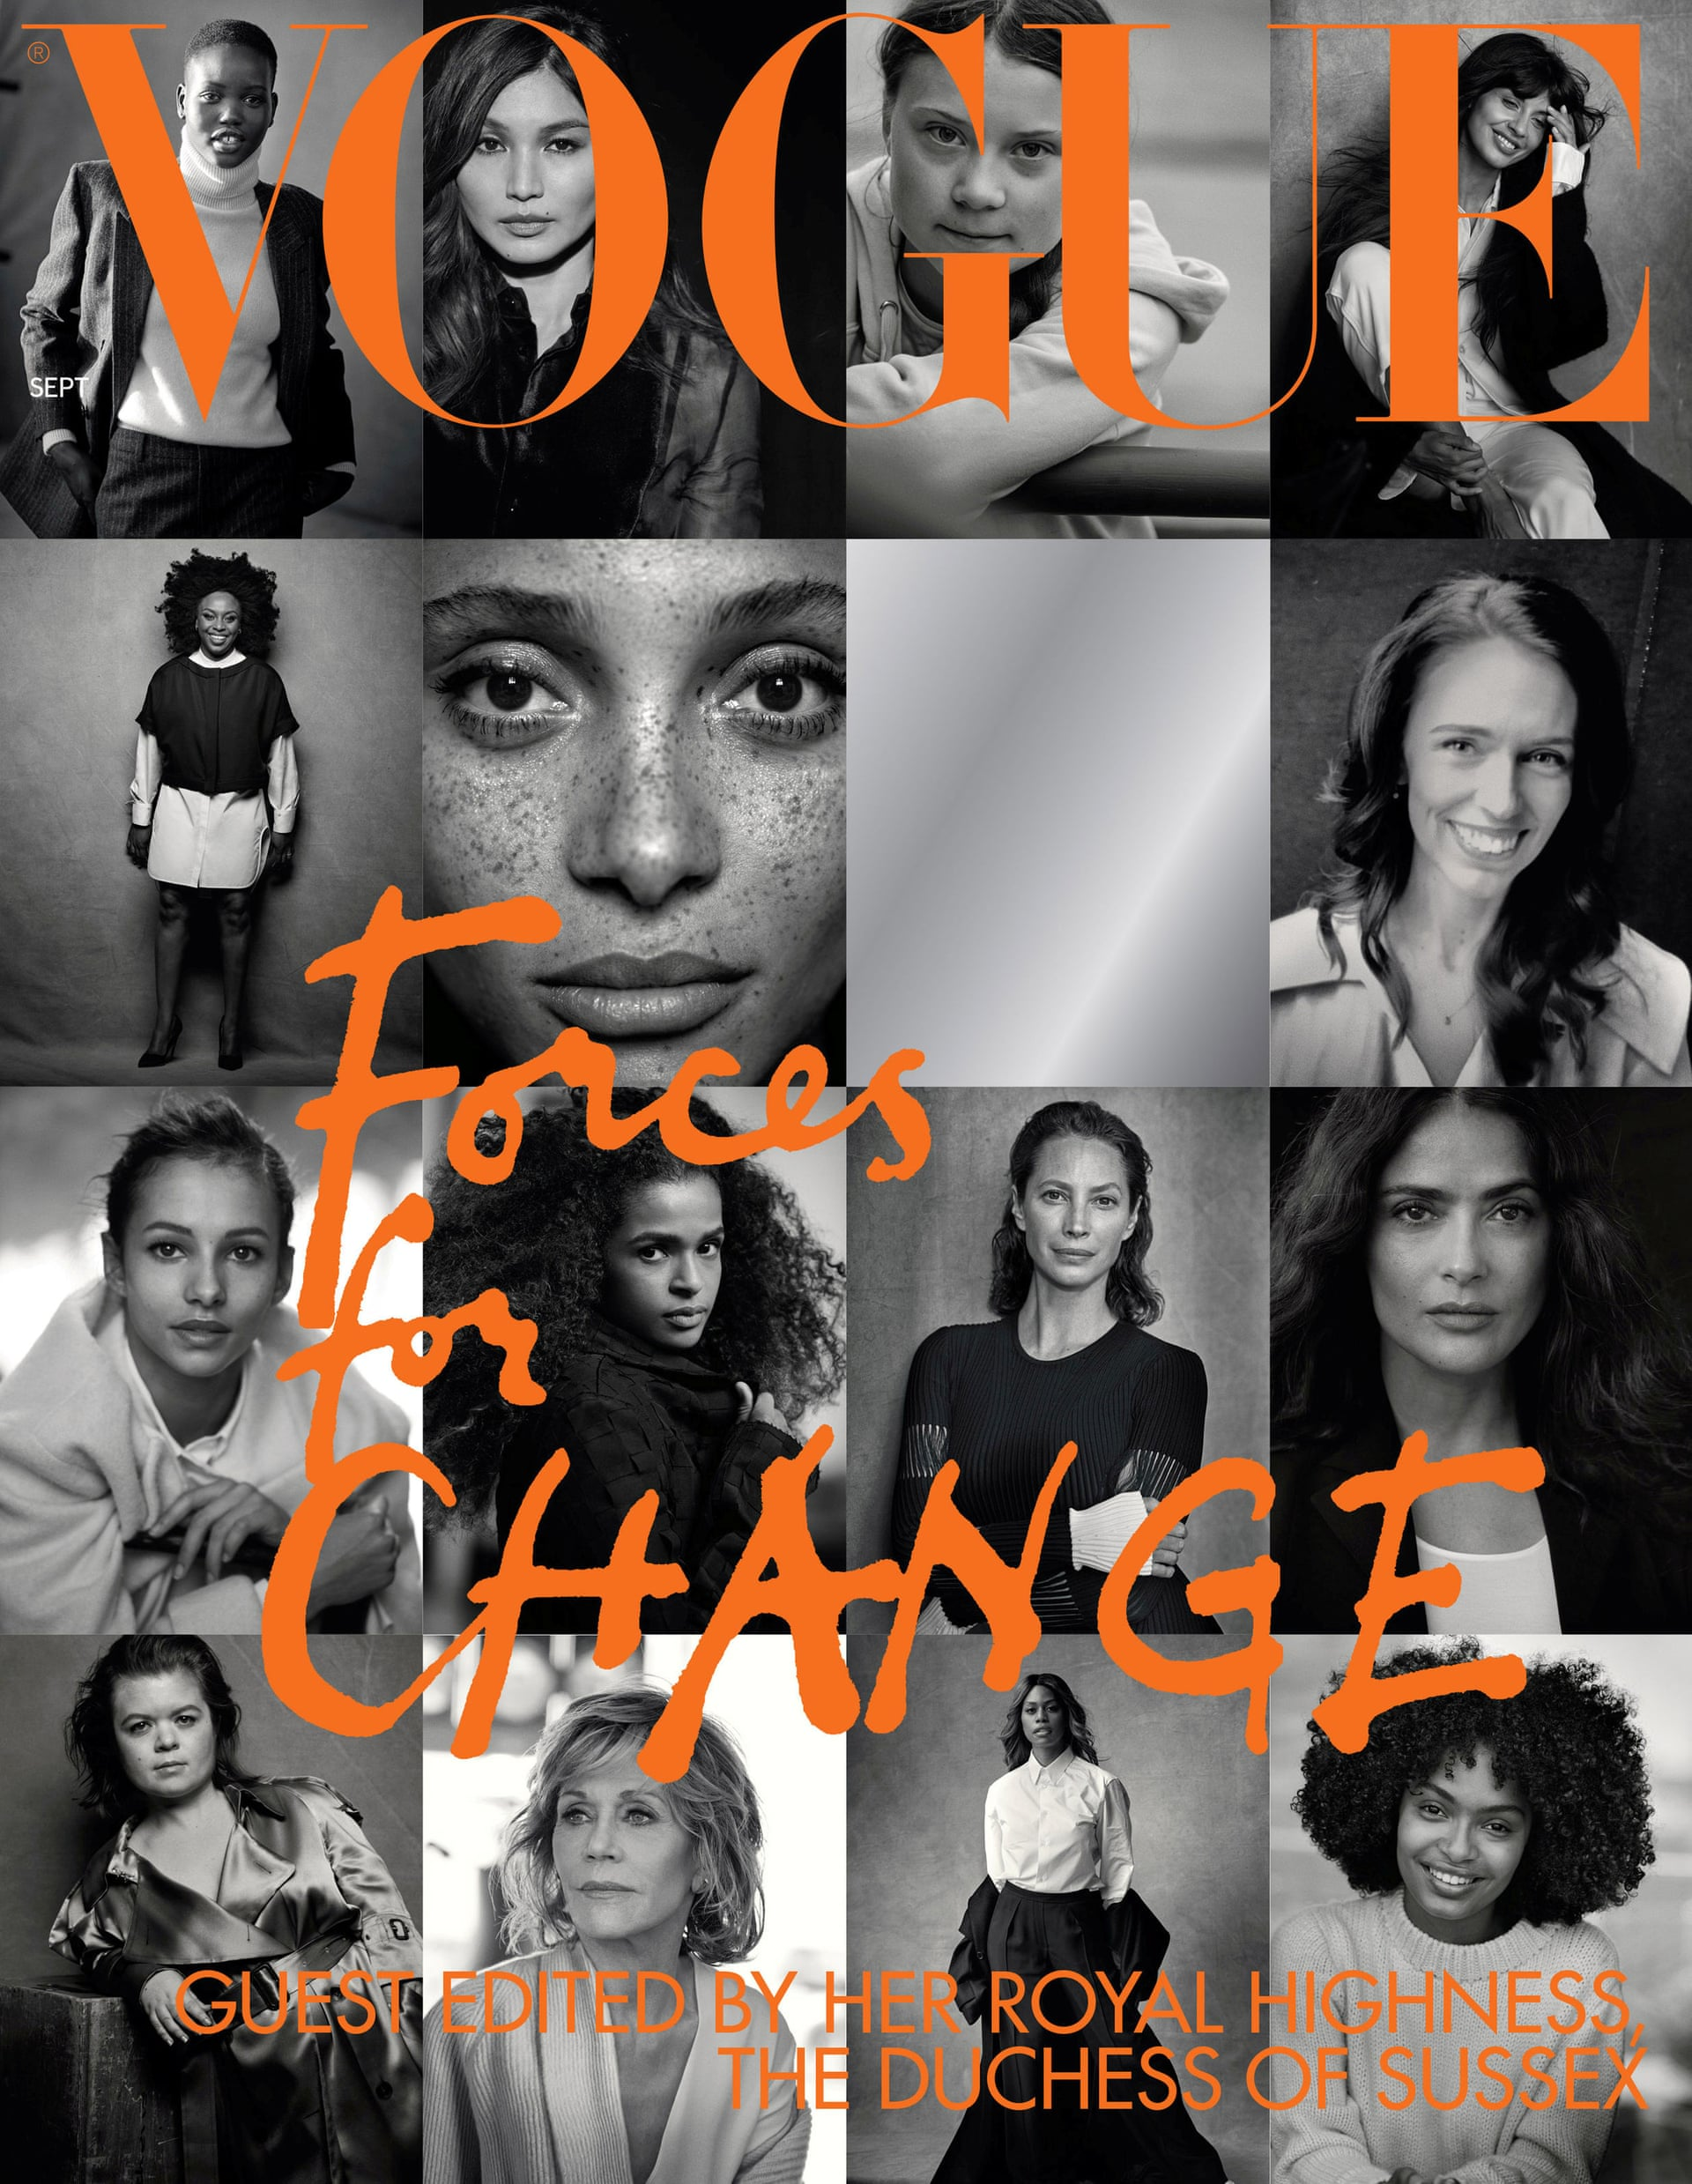 Iconic photographer Peter Lindbergh photographs the cover of British Vogue's September 2019 issue, guest edited by Meghan Markle, Duchess of Sussex.